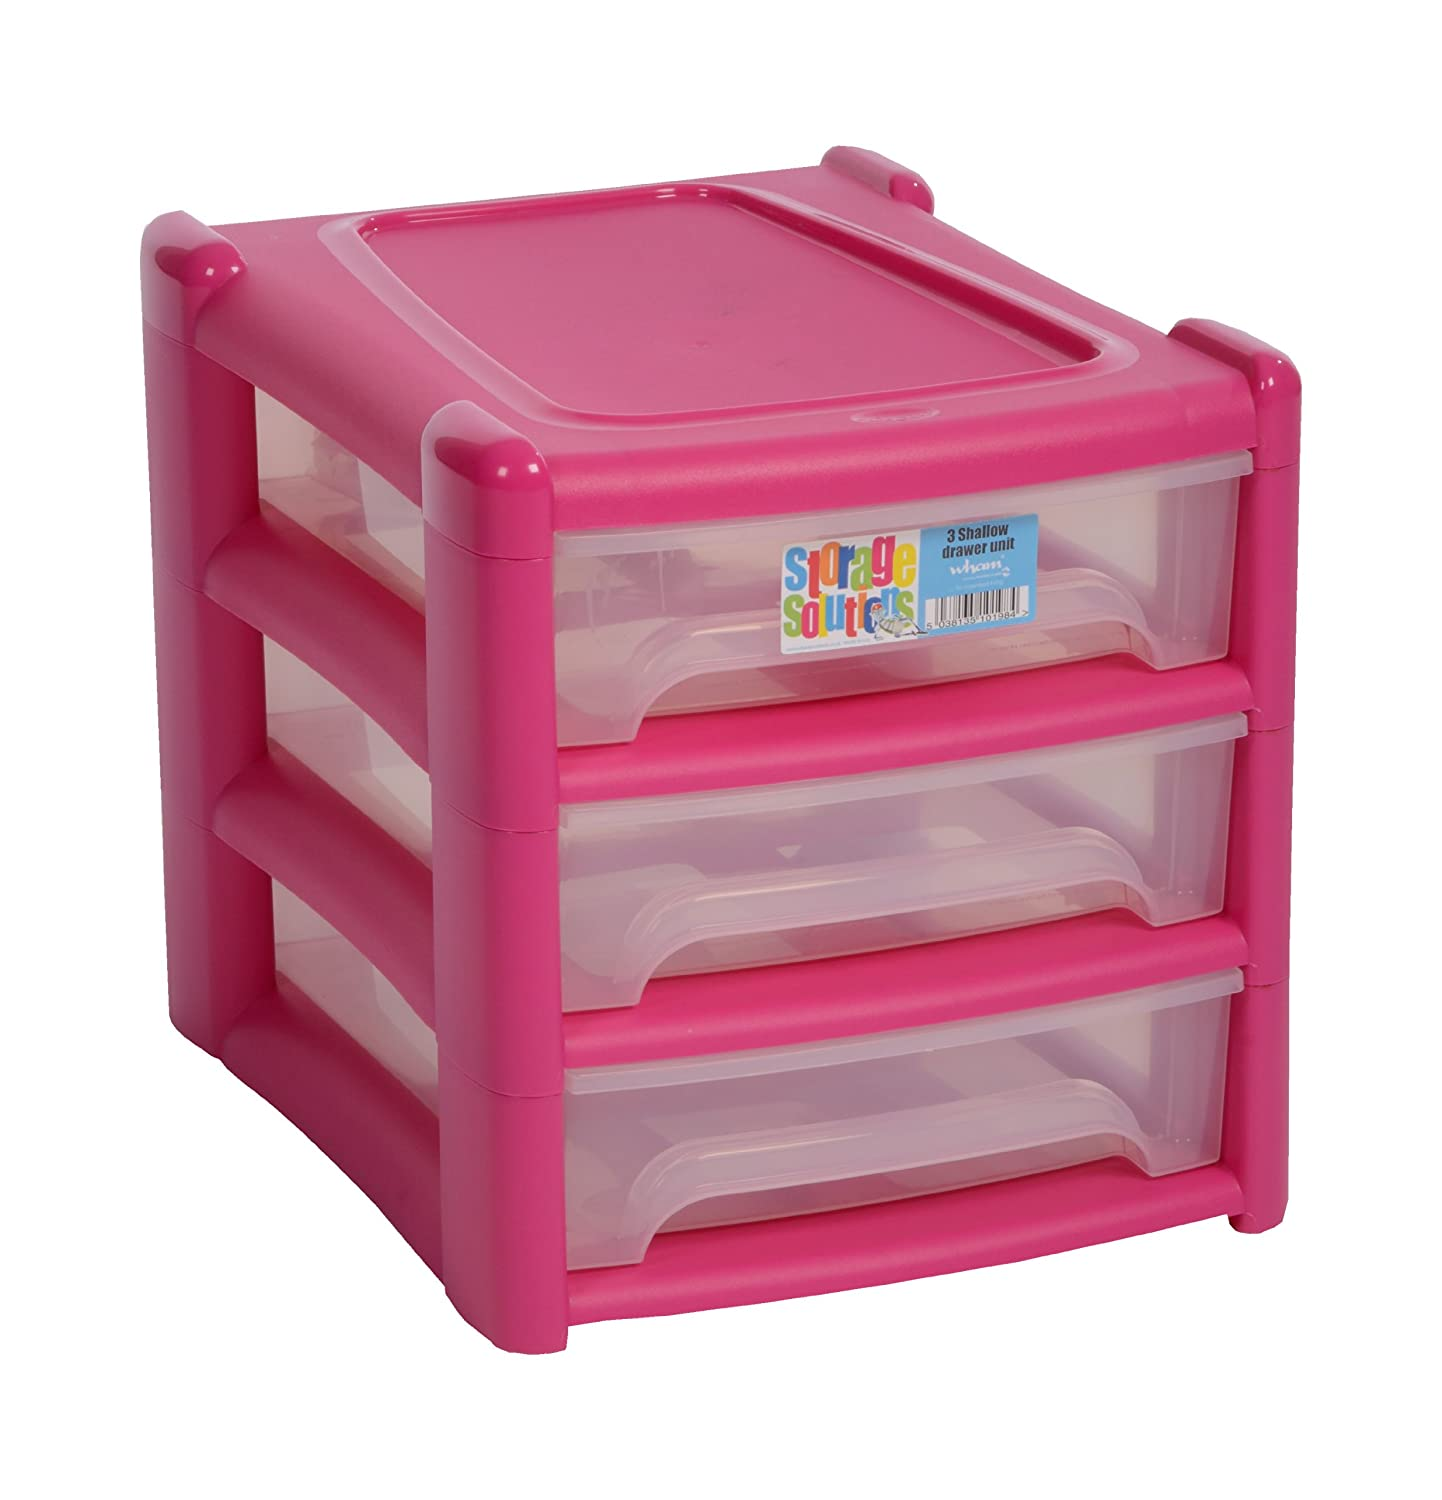 New A4 Shallow 3 Drawer Plastic Storage Unit  PINK  For Office / Bedroom /  Study /Kids Room: Amazon.co.uk: Lighting